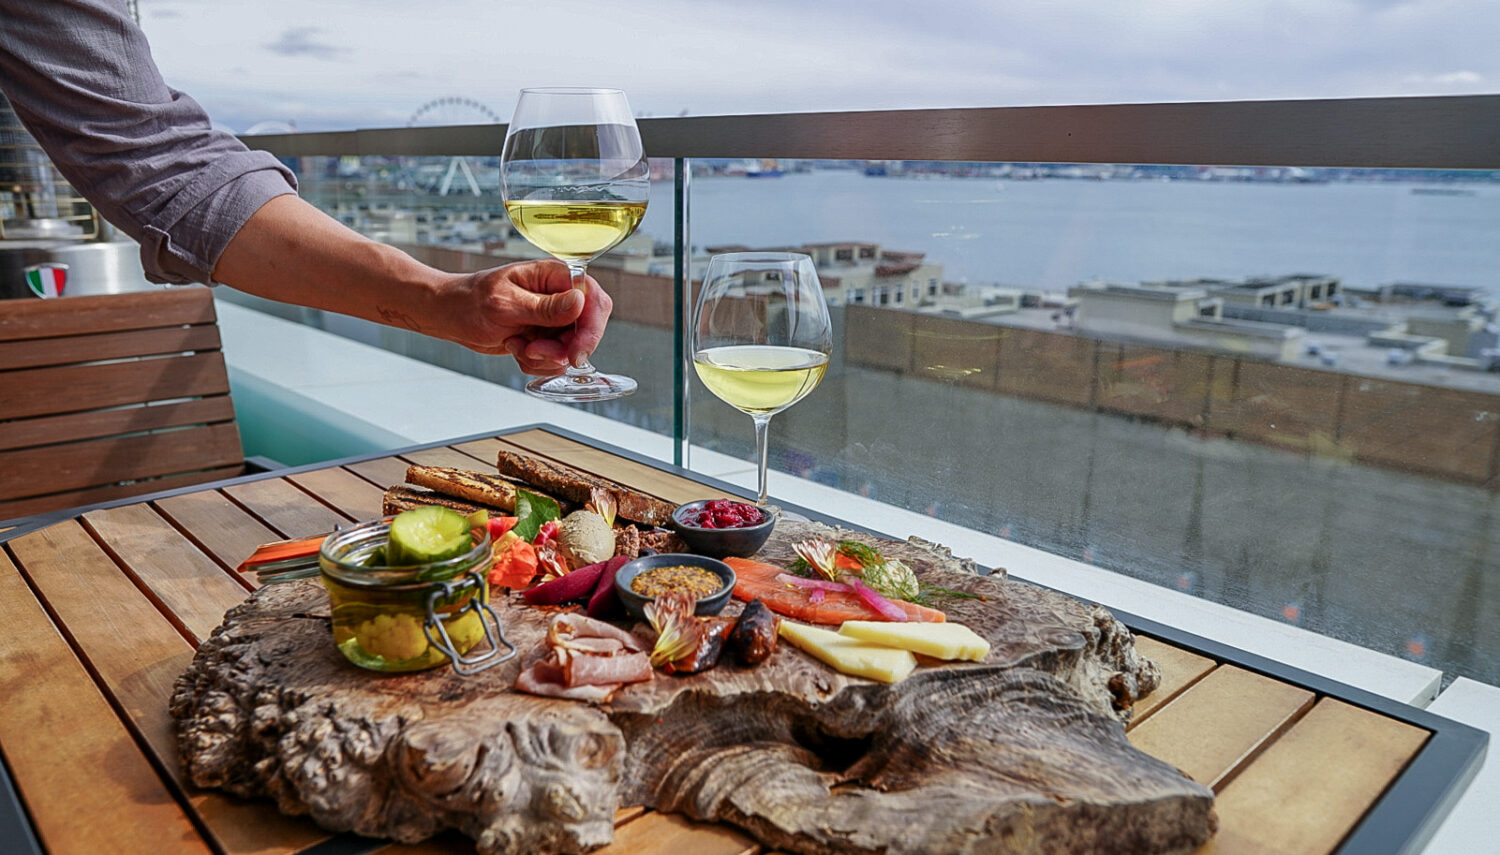 A spread of cheeses, pickles, and meats on a wooden board, with a glass of white wine and another glass of wine held by a hand. The Puget Sound and docks with boats are in the distance.